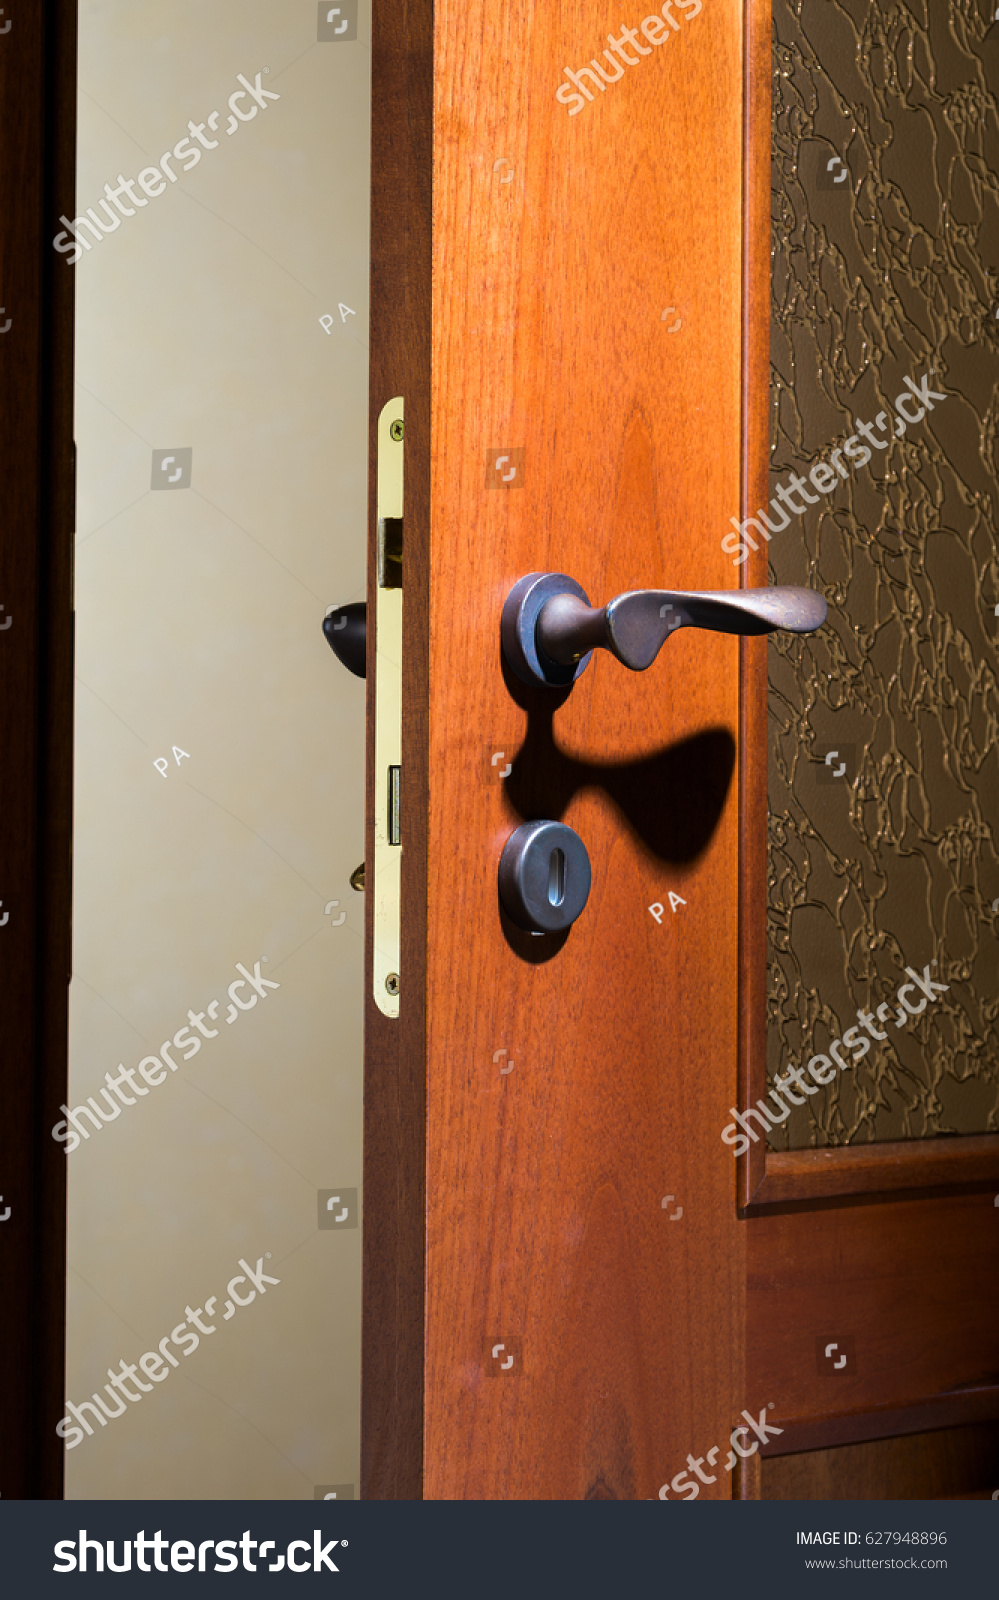 Wooden Door Lock Handle Interior Buildings Landmarks